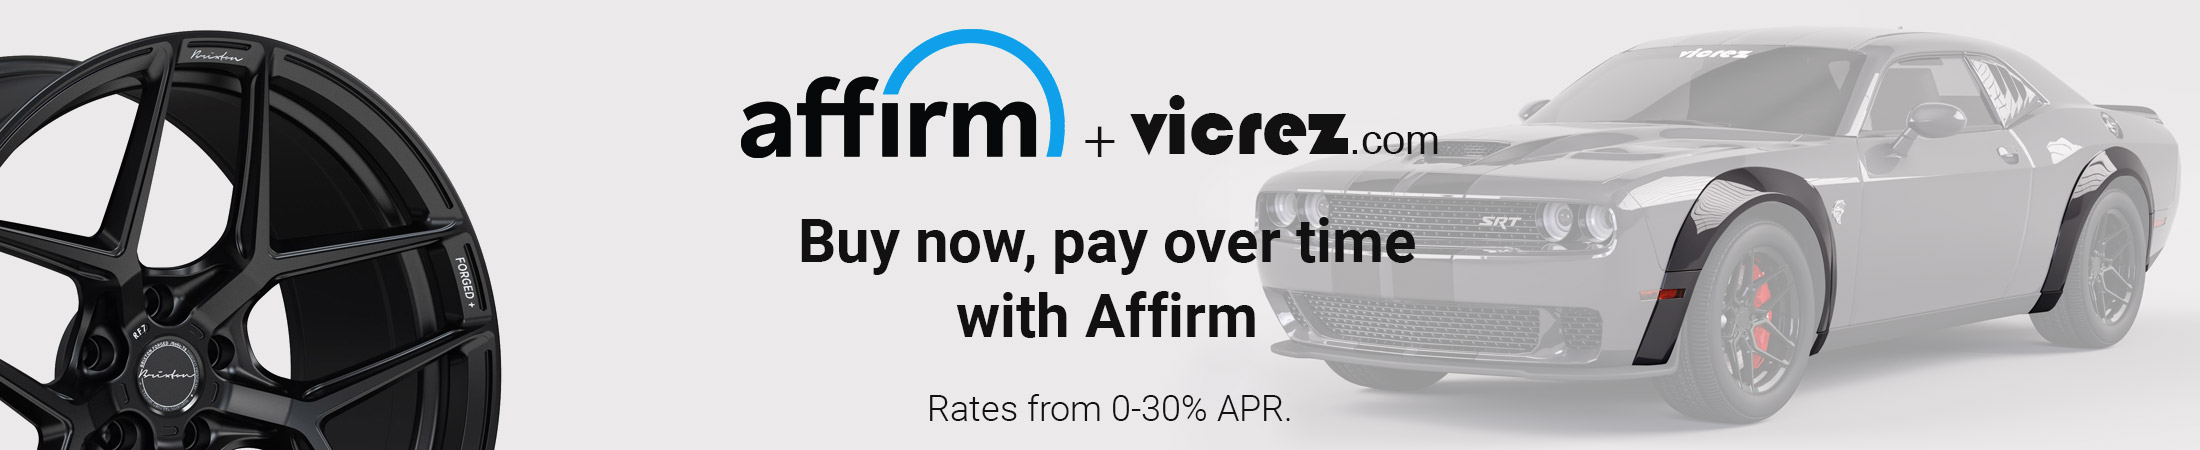 Affirm | Quick and Easy Easy Financing | Pay Later with Affirm: Vicrez.com